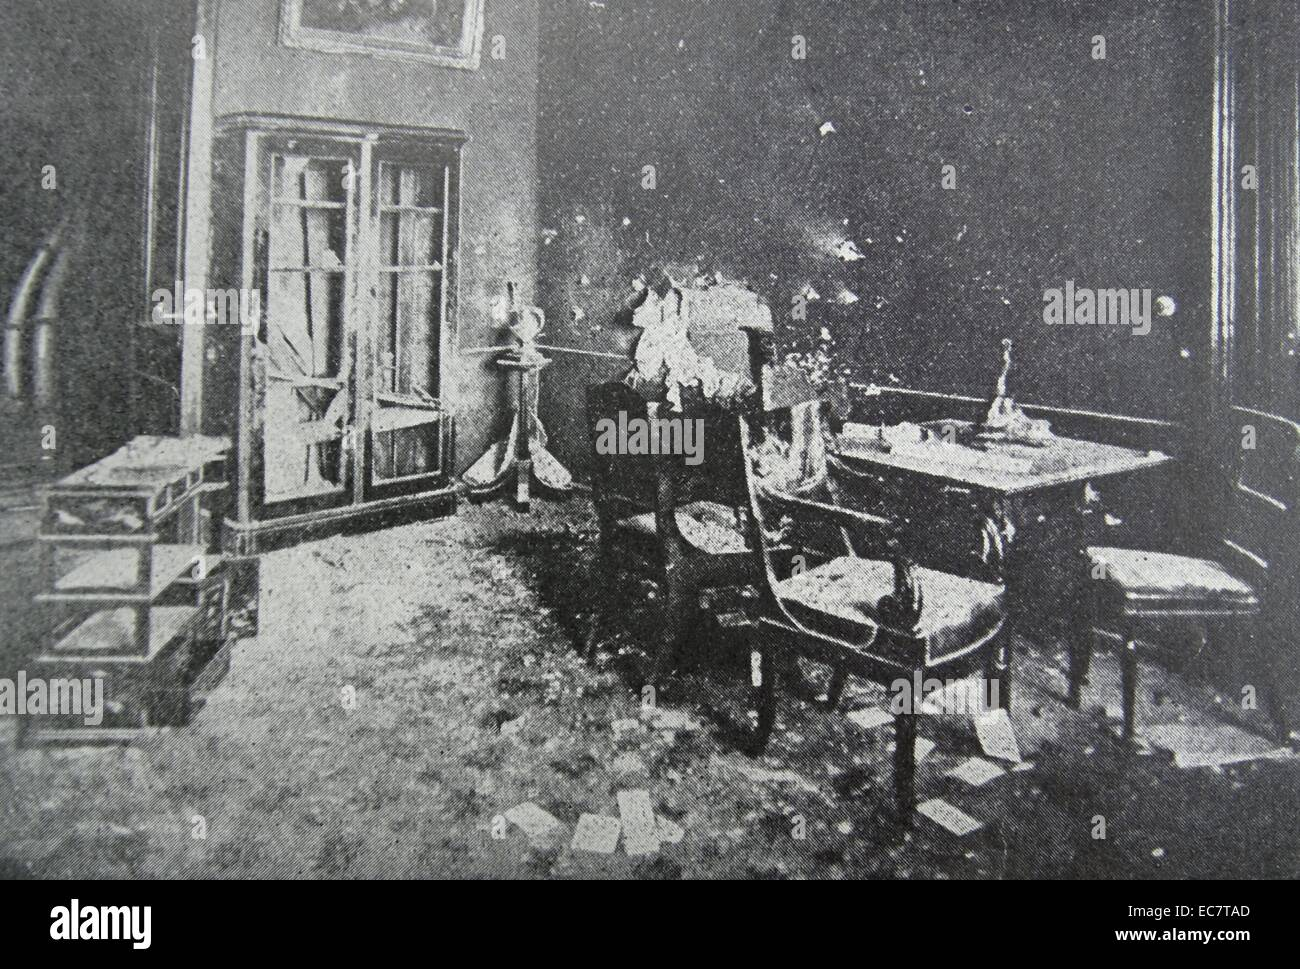 Office of the Dowager Empress Marie fedorovna of Russia, looted during the russian revolution 1917 - Stock Image